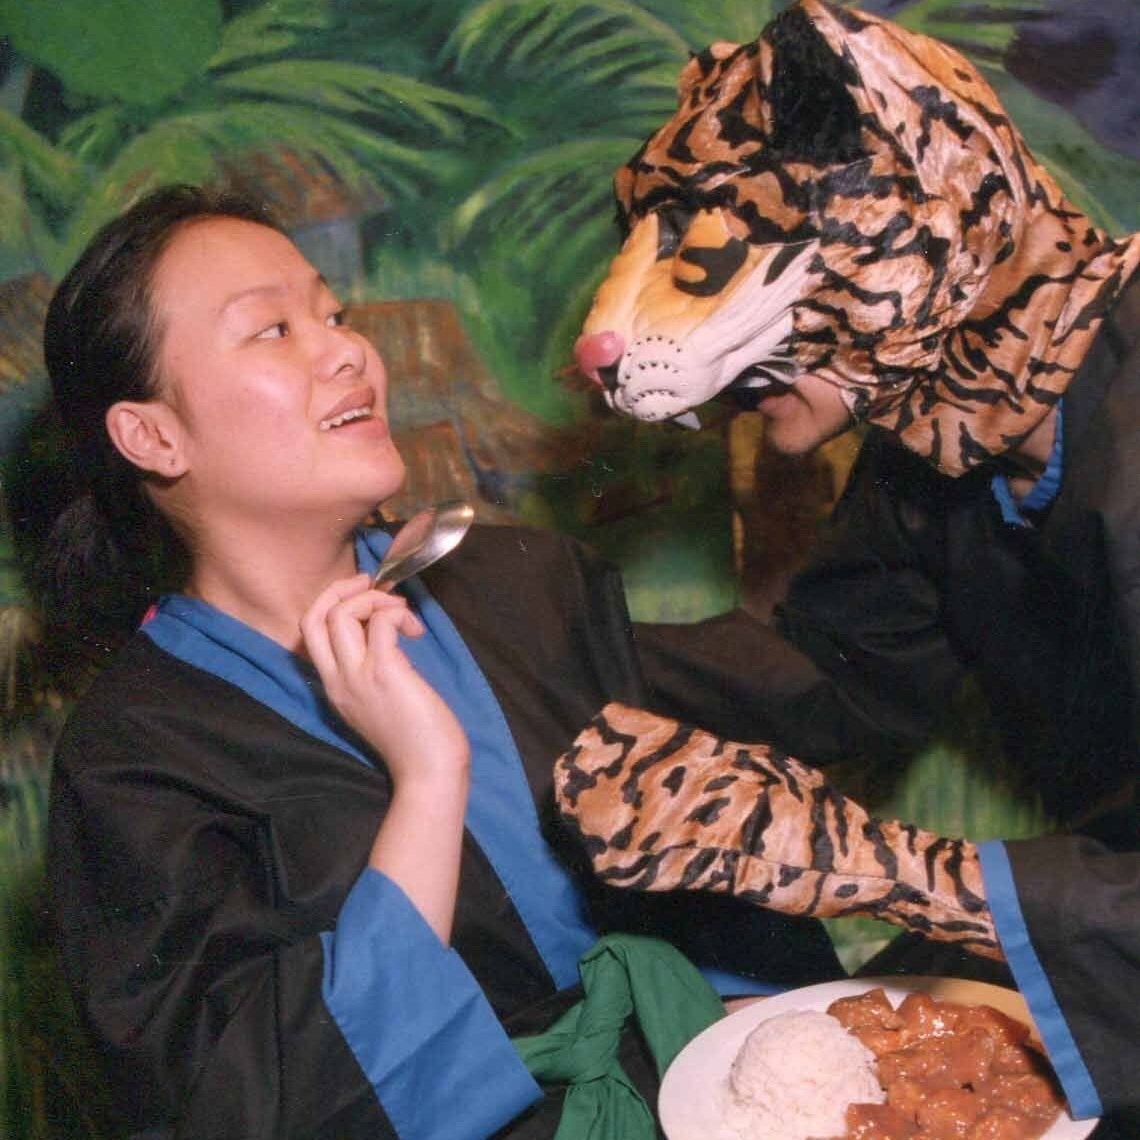 TIGER TALES - written by Cha Yang and R.A. Shiomidirected by Rick Shiomiassistant director: Cha YangMay 4th-24th, 2001